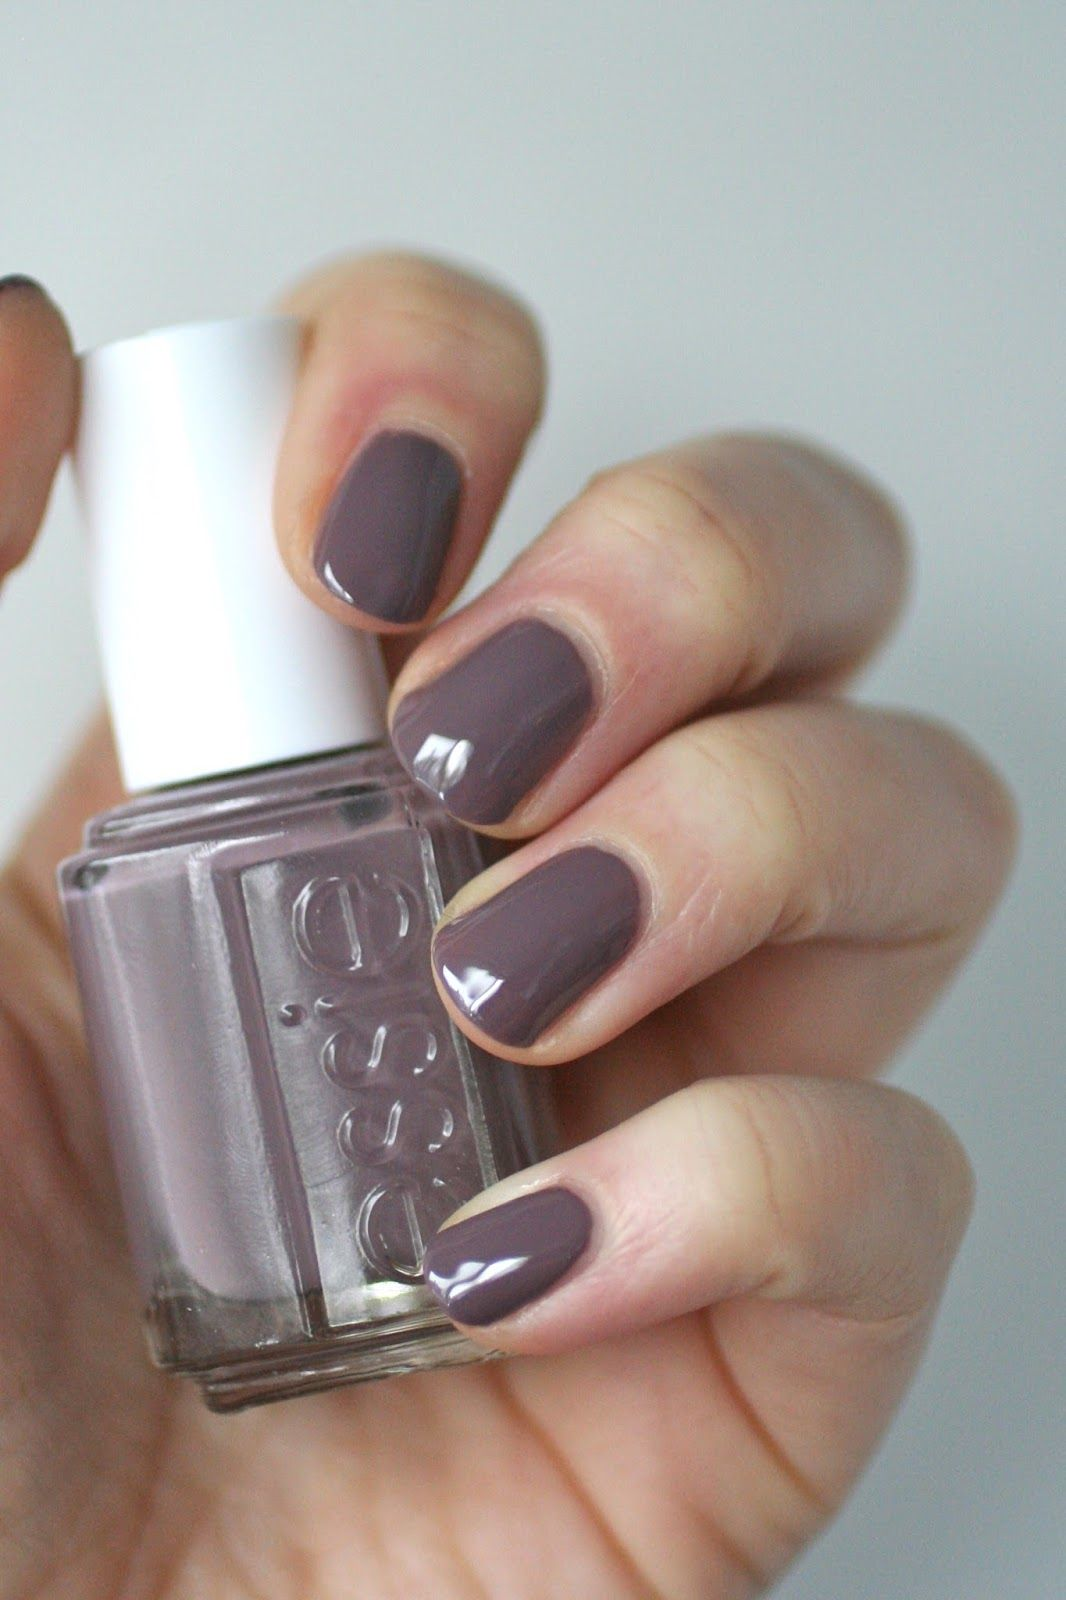 Essie Grey Purples Comparison Lilacism Love Acceptance Bangle Jangle Warm Toasty Turtleneck Merino Cool S Nails Inspiration Nail Polish Nail Colors